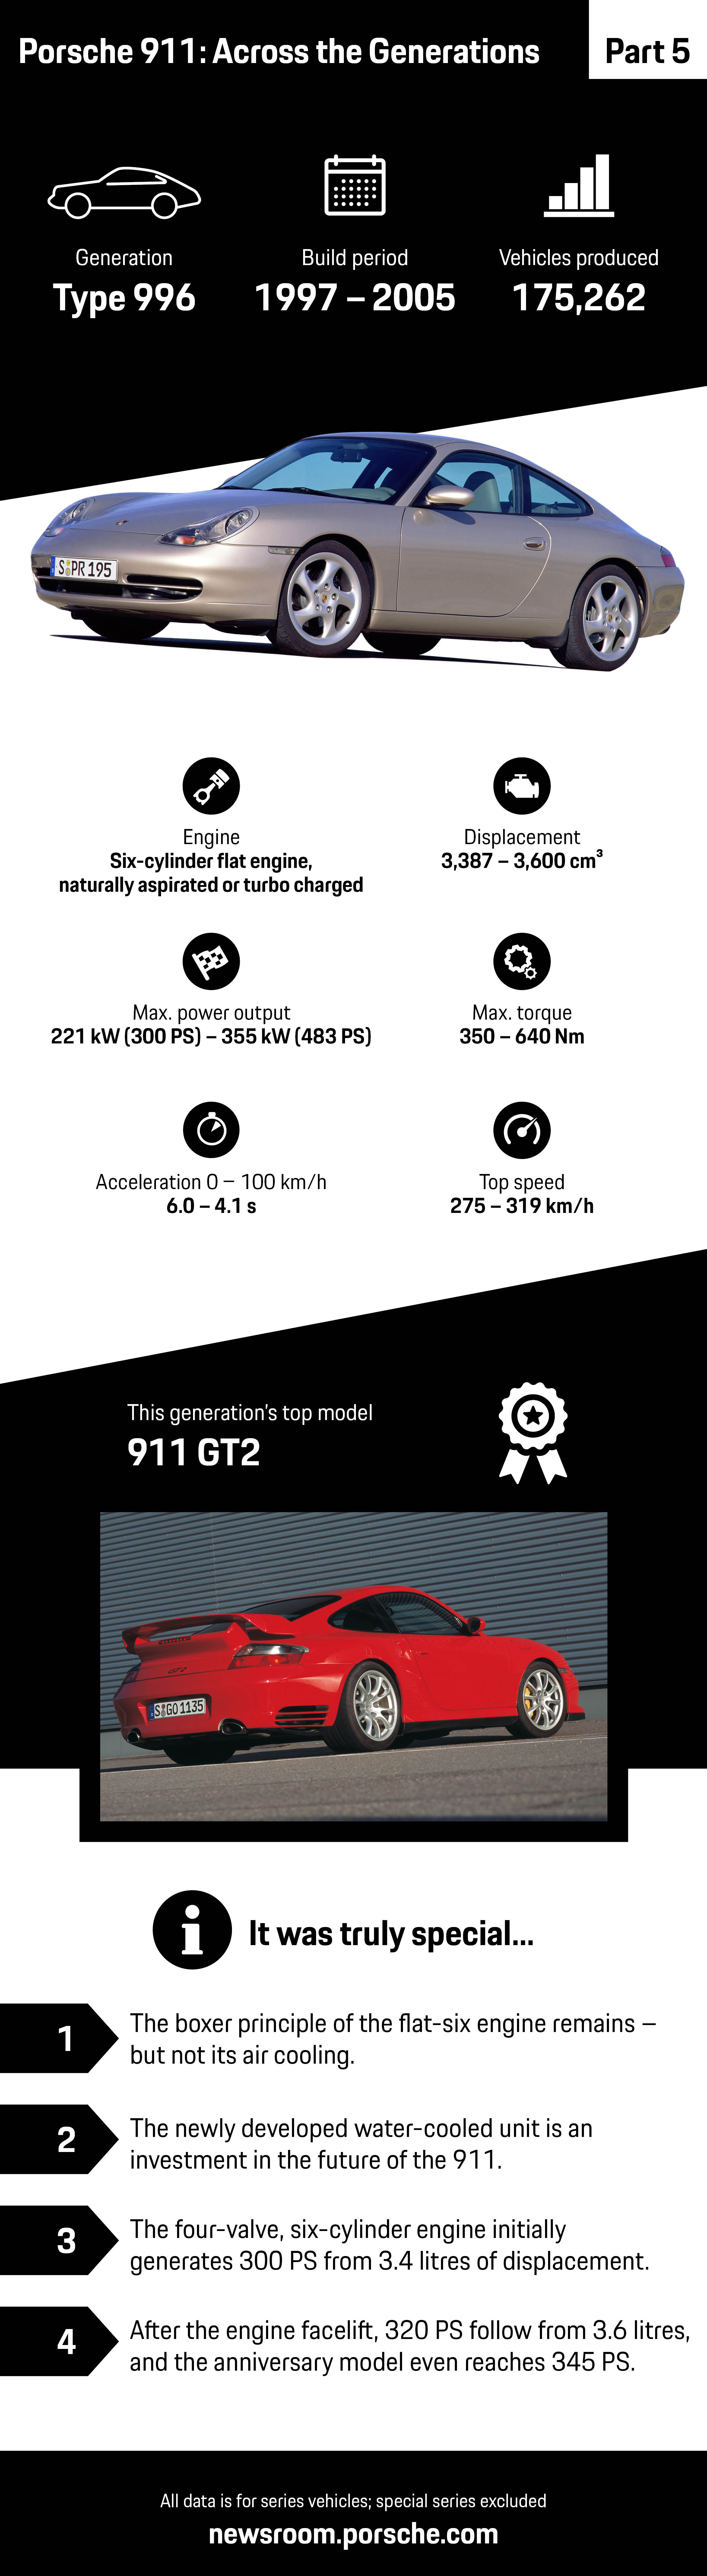 Porsche 911: Across the Generations – part 5, infographic, 2018, Porsche AG